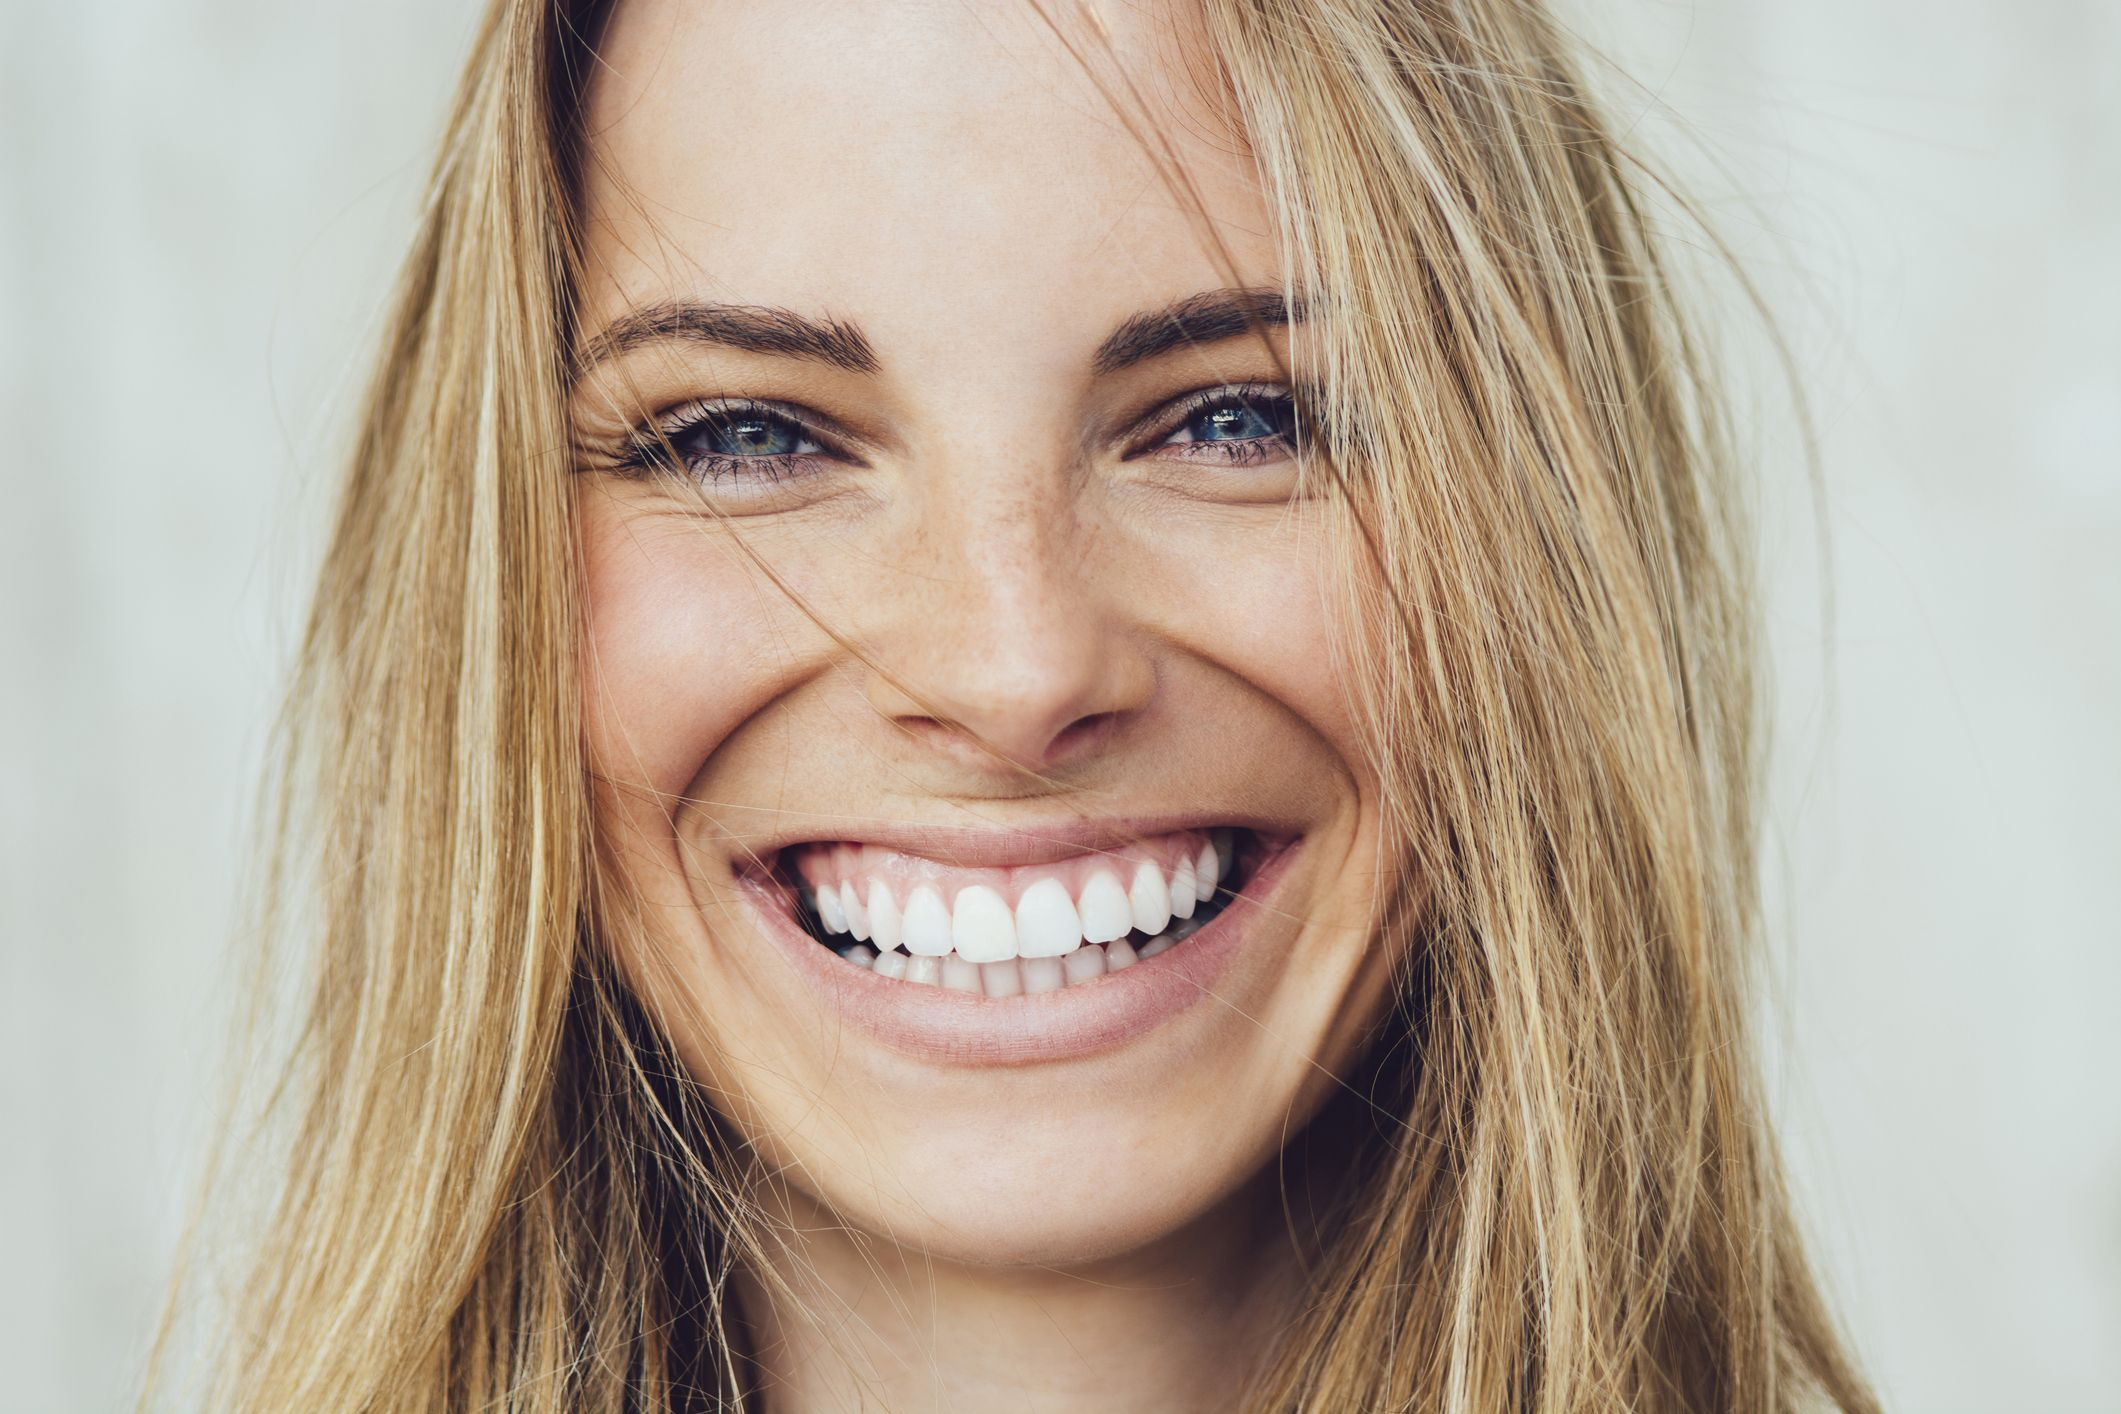 Teeth Whitening 9 Things You Need To Know Before Your Appointment